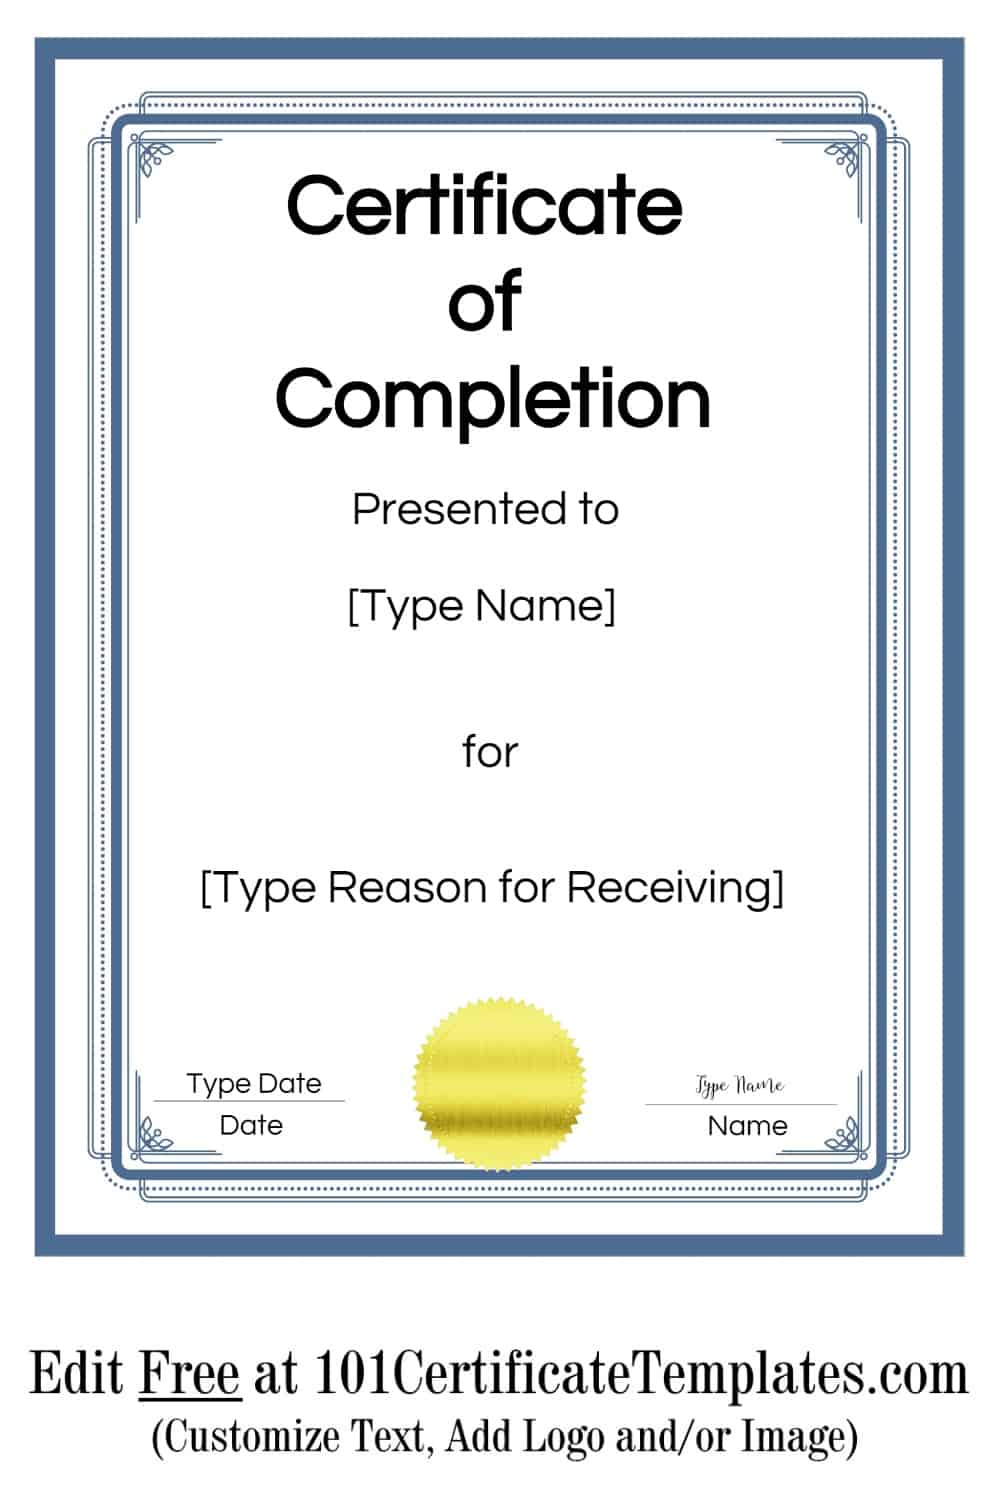 Free Certificate of Completion | Customize Online then Print